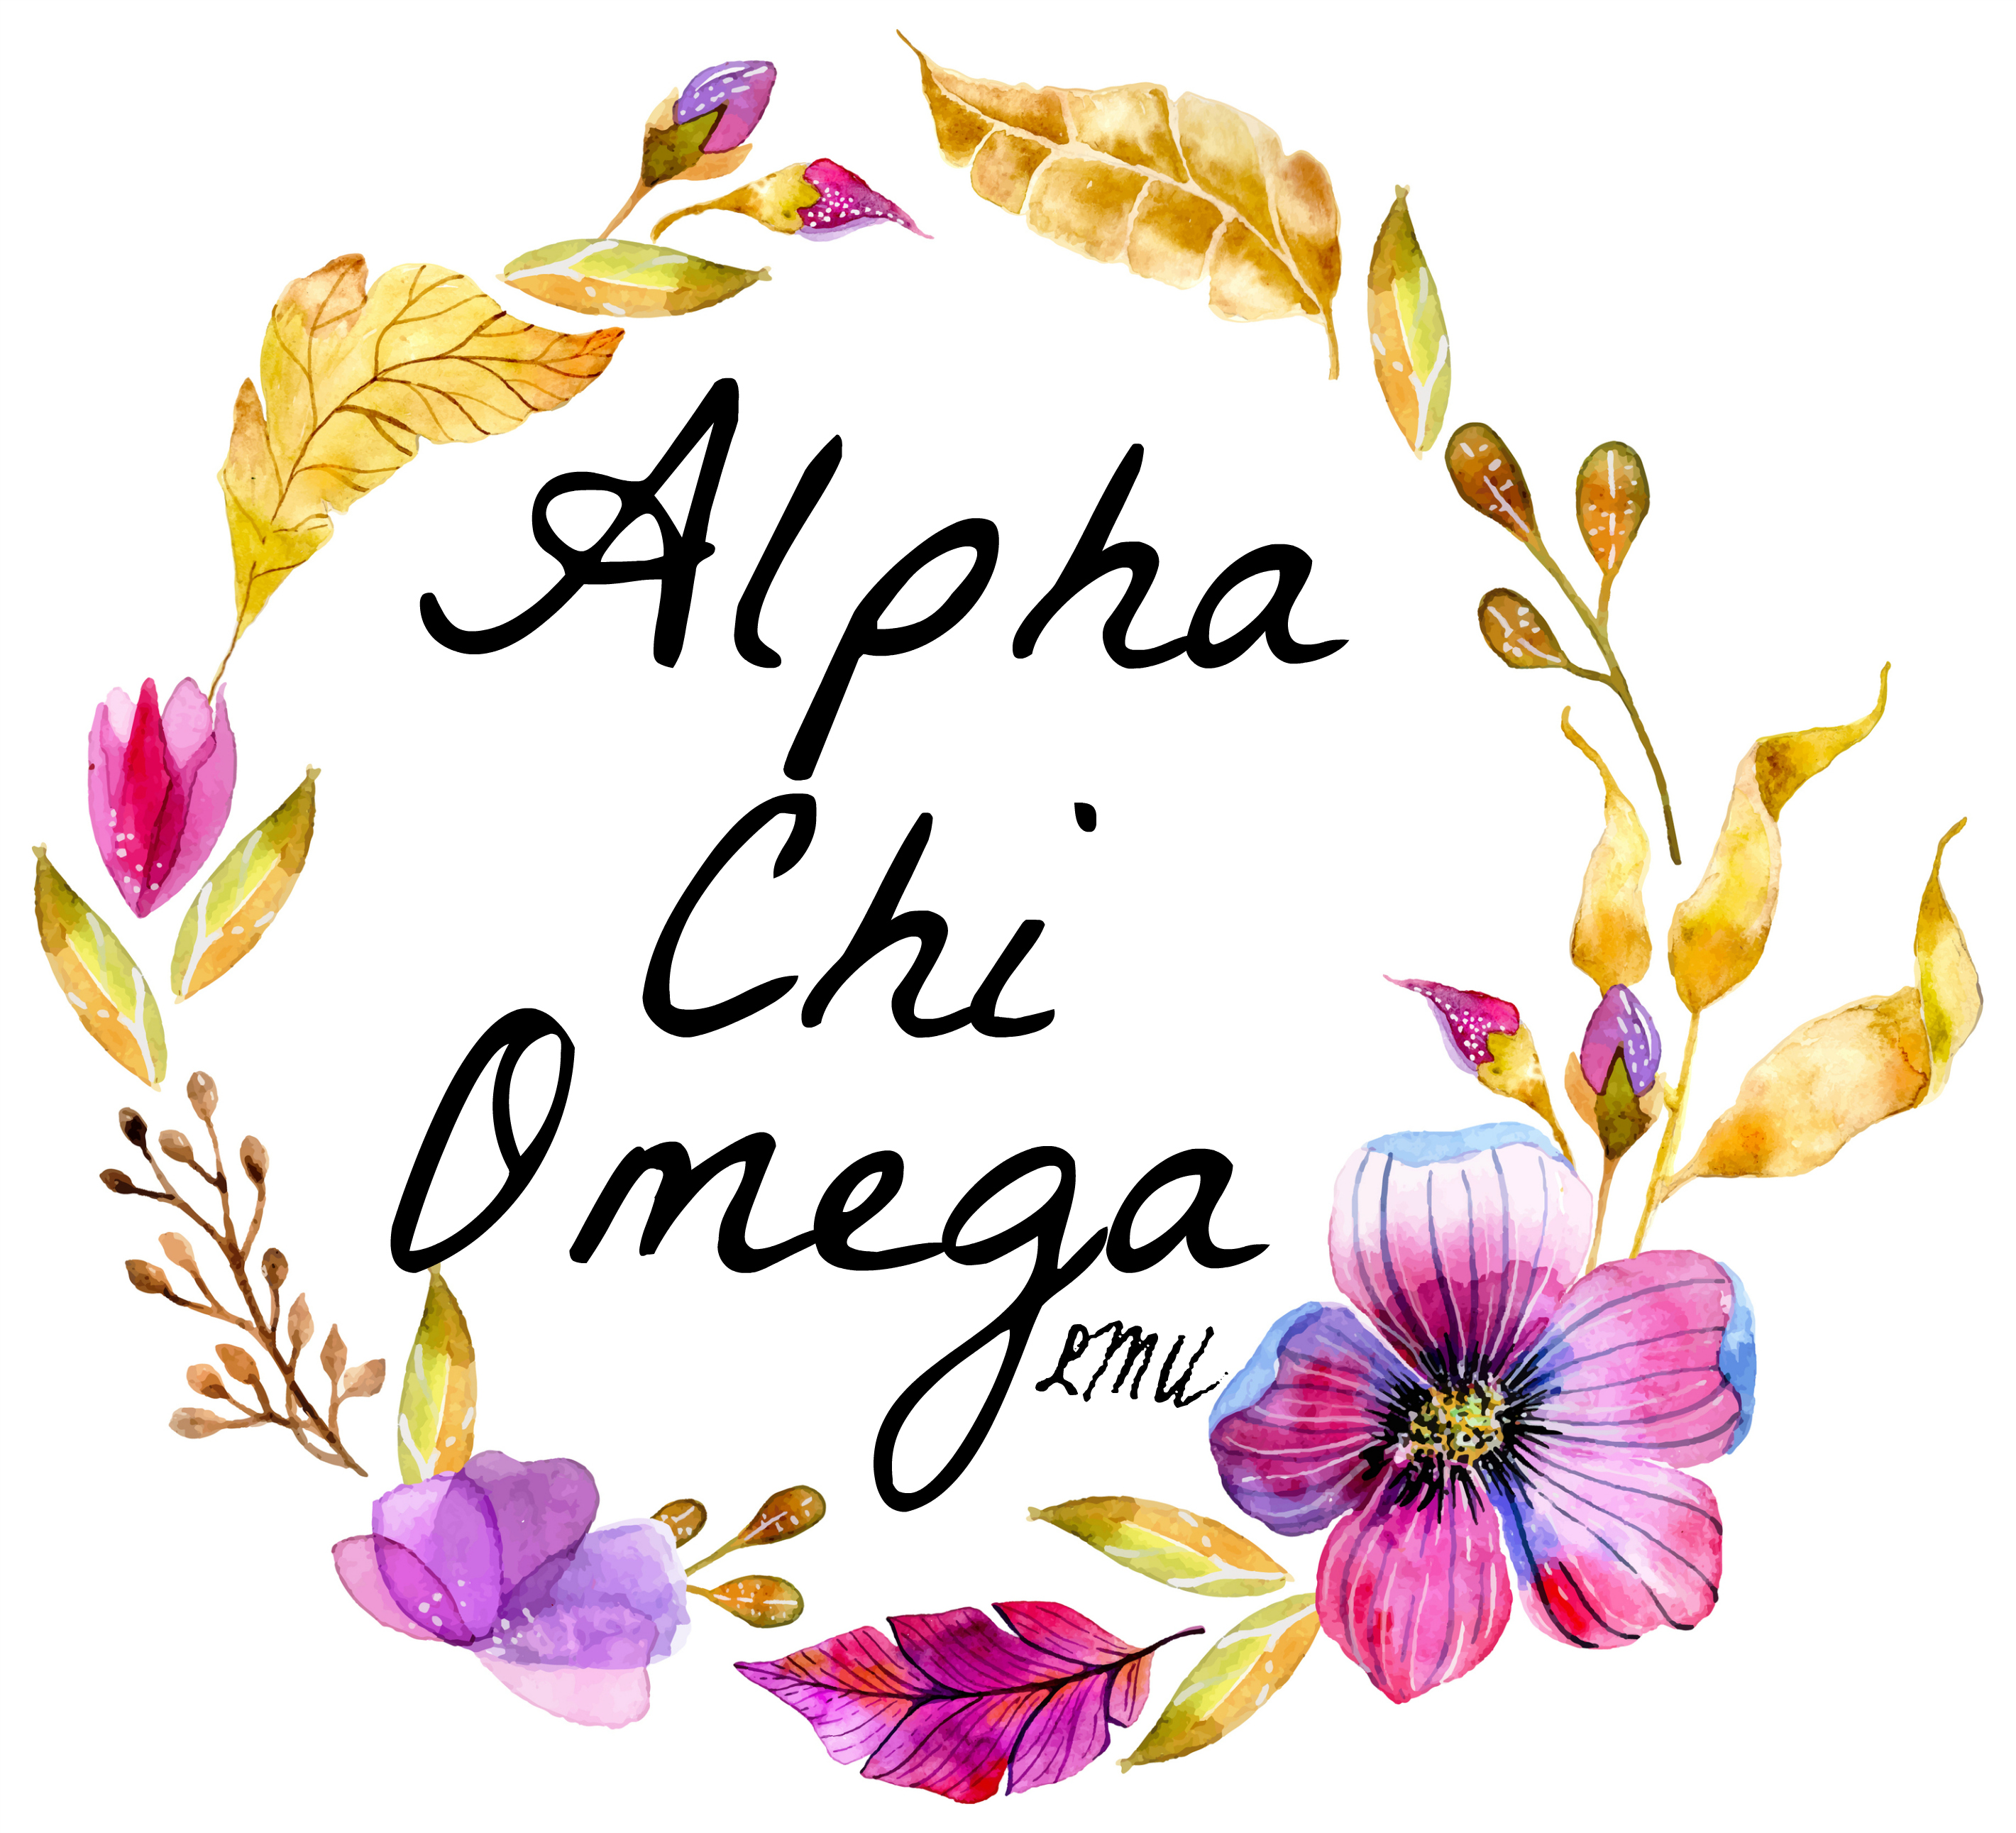 Alpha chi omega hot girls wallpaper for St george utah tattoo